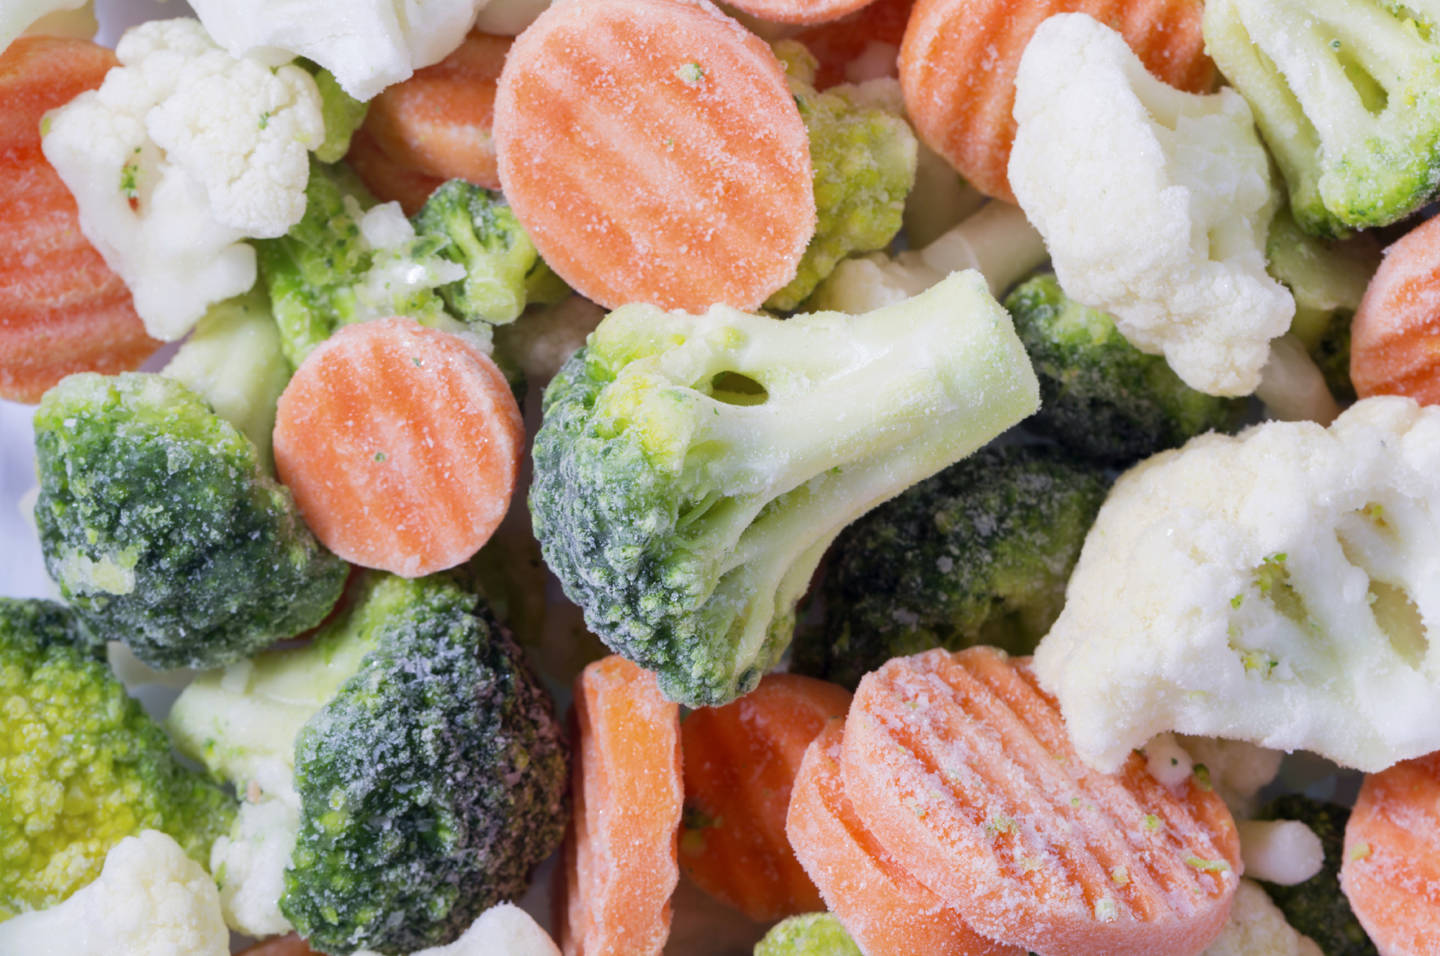 Frozen Food Fears: 4 Things To Know About The Listeria Recall